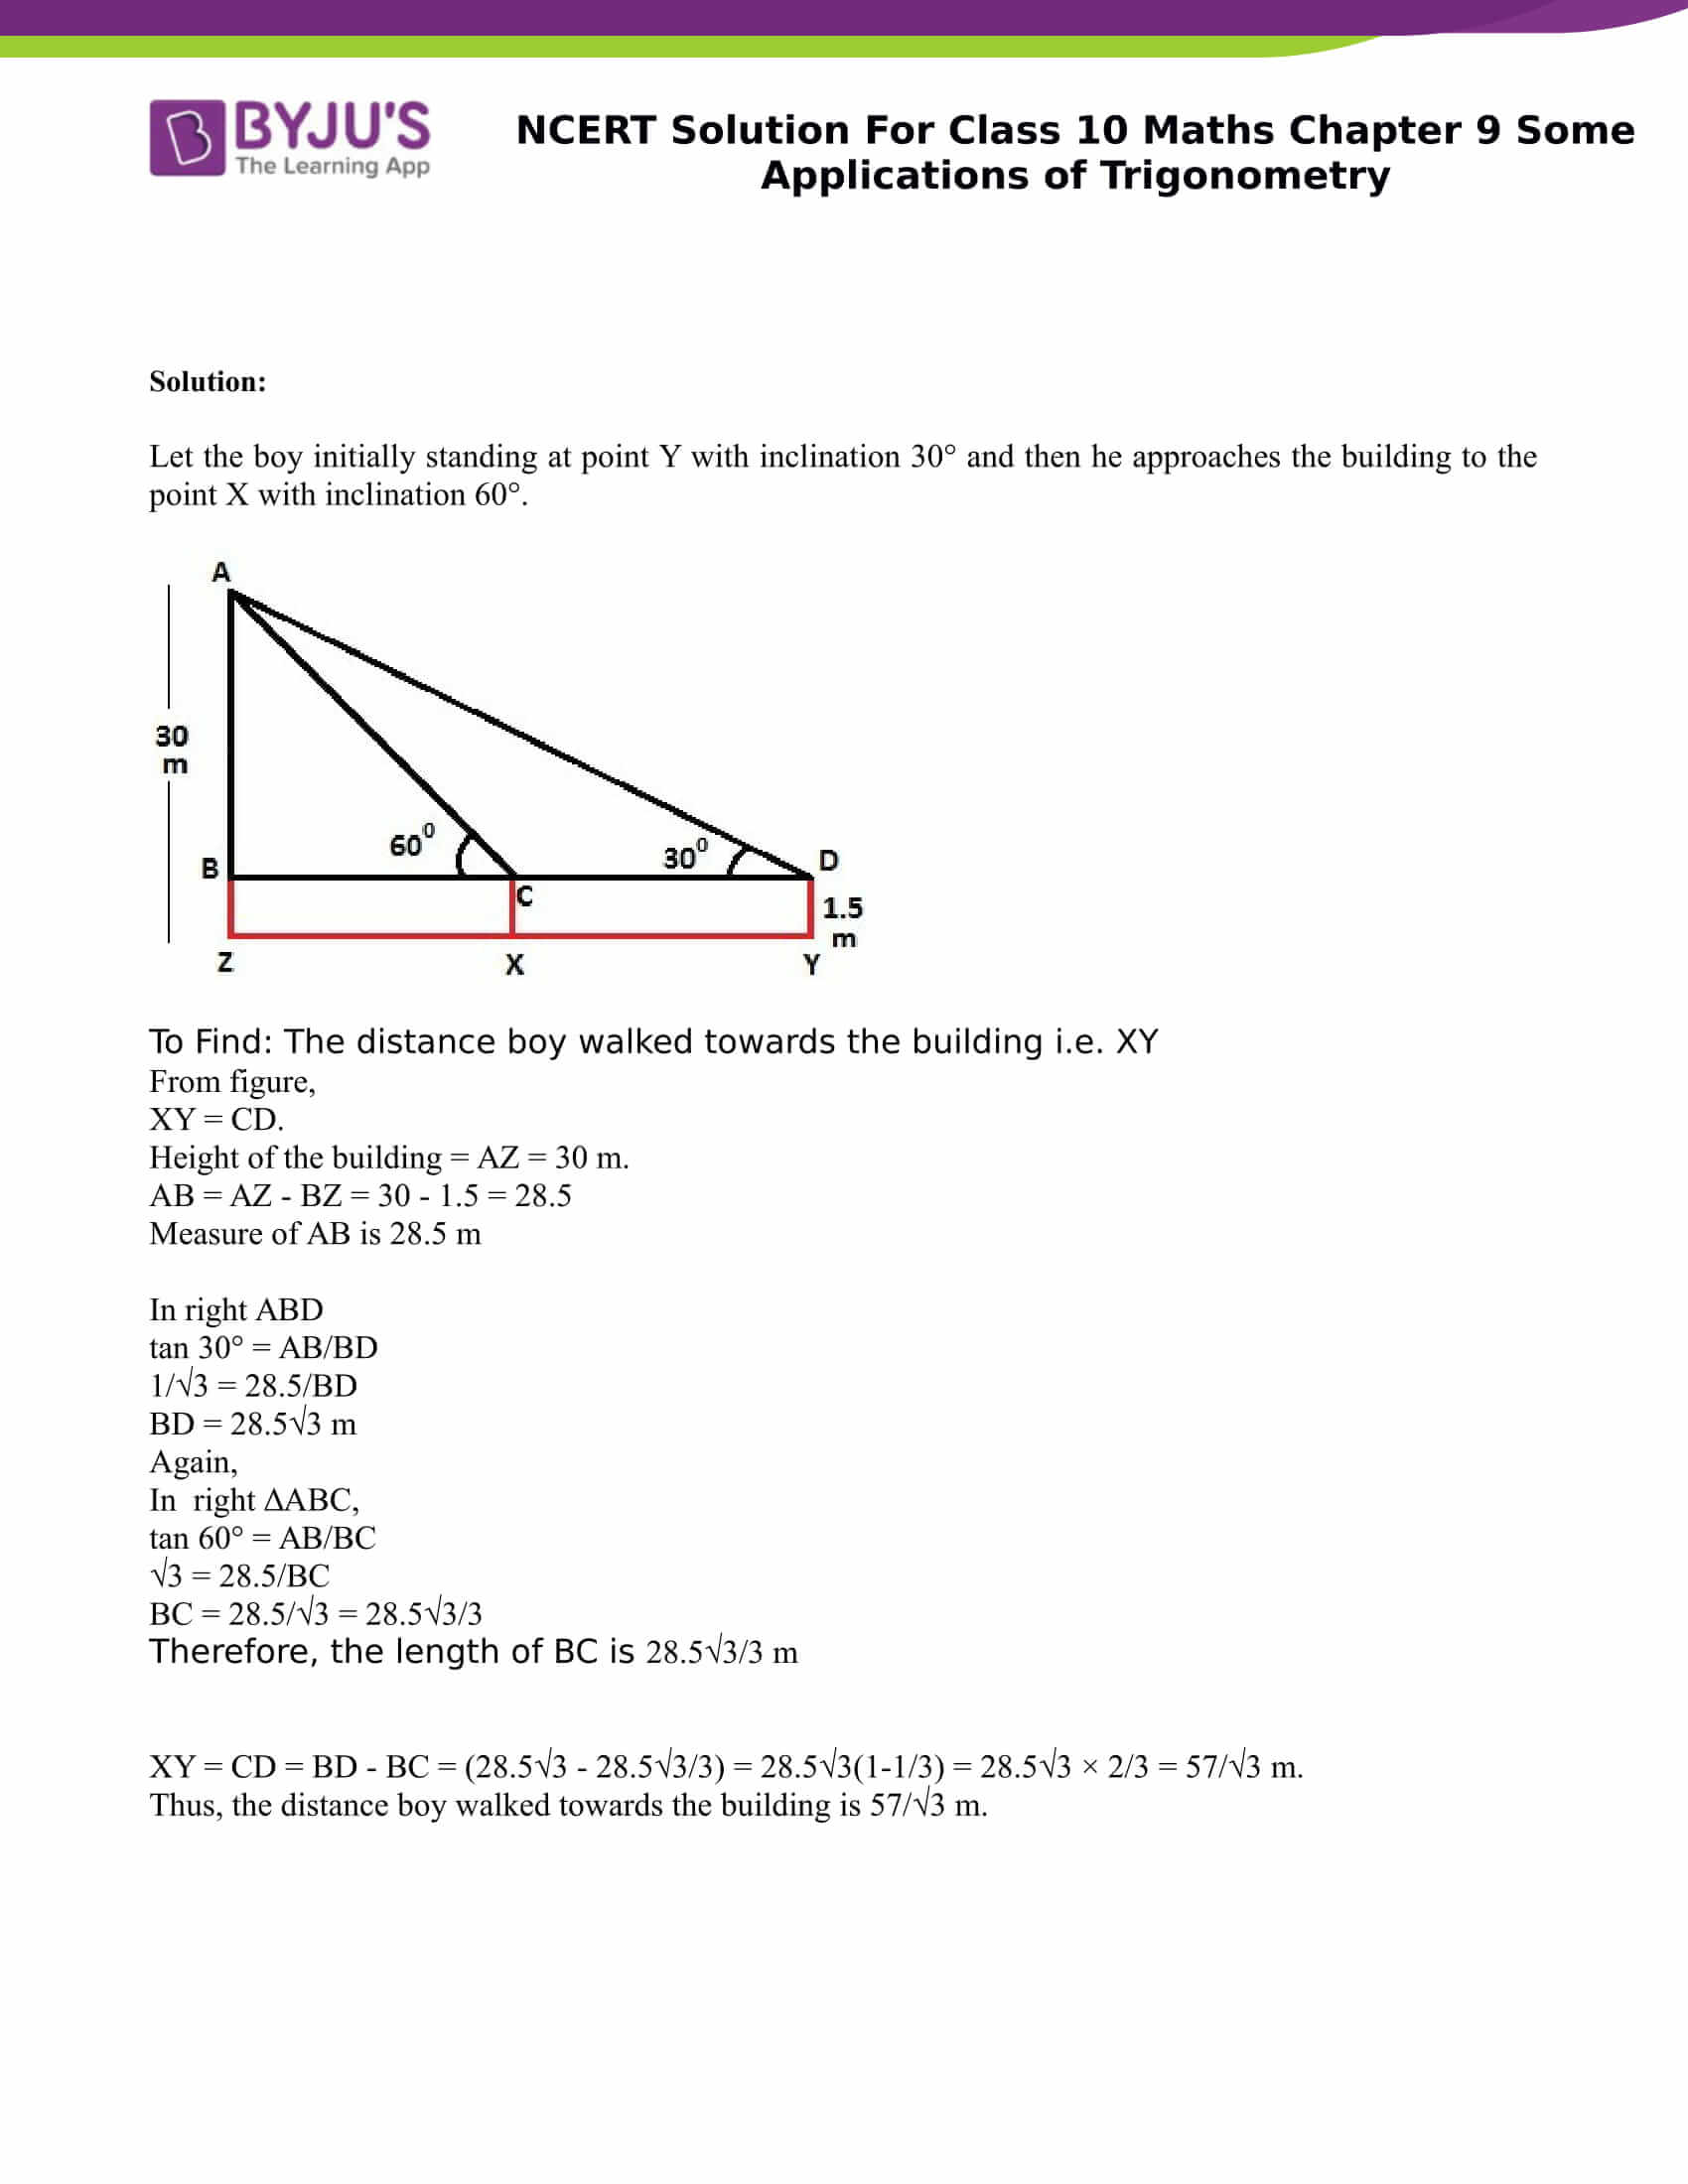 NCERT Solution for class 10 Maths Chapter 9 Some Applications of Trigonometry Part 5